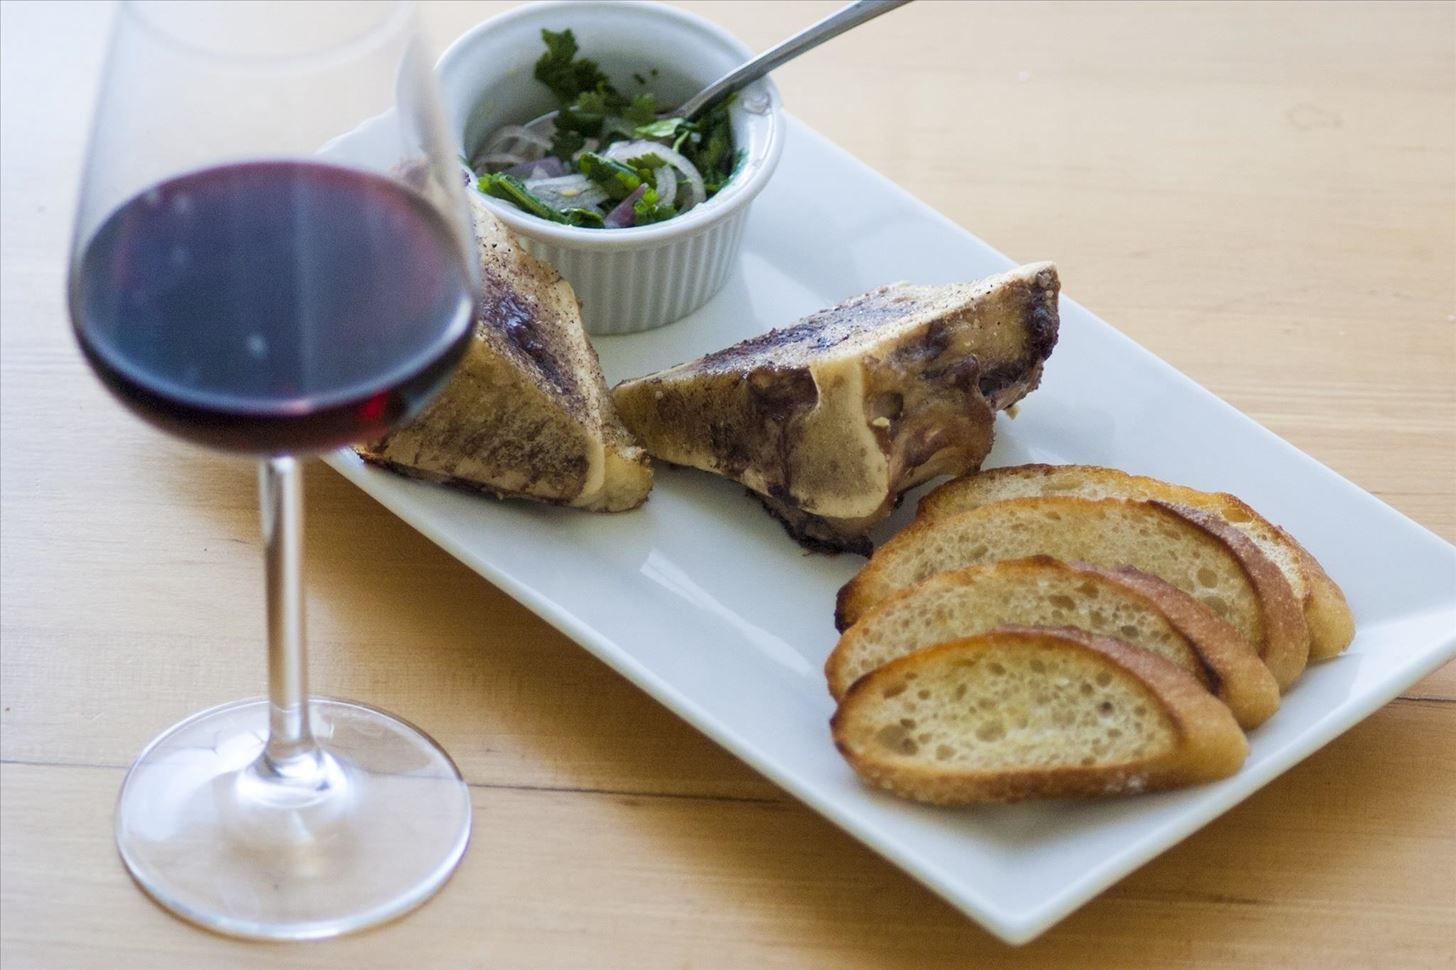 Weird Ingredient Wednesday: Bone Marrow, the Food That Tastes a Lot Better Than It Sounds